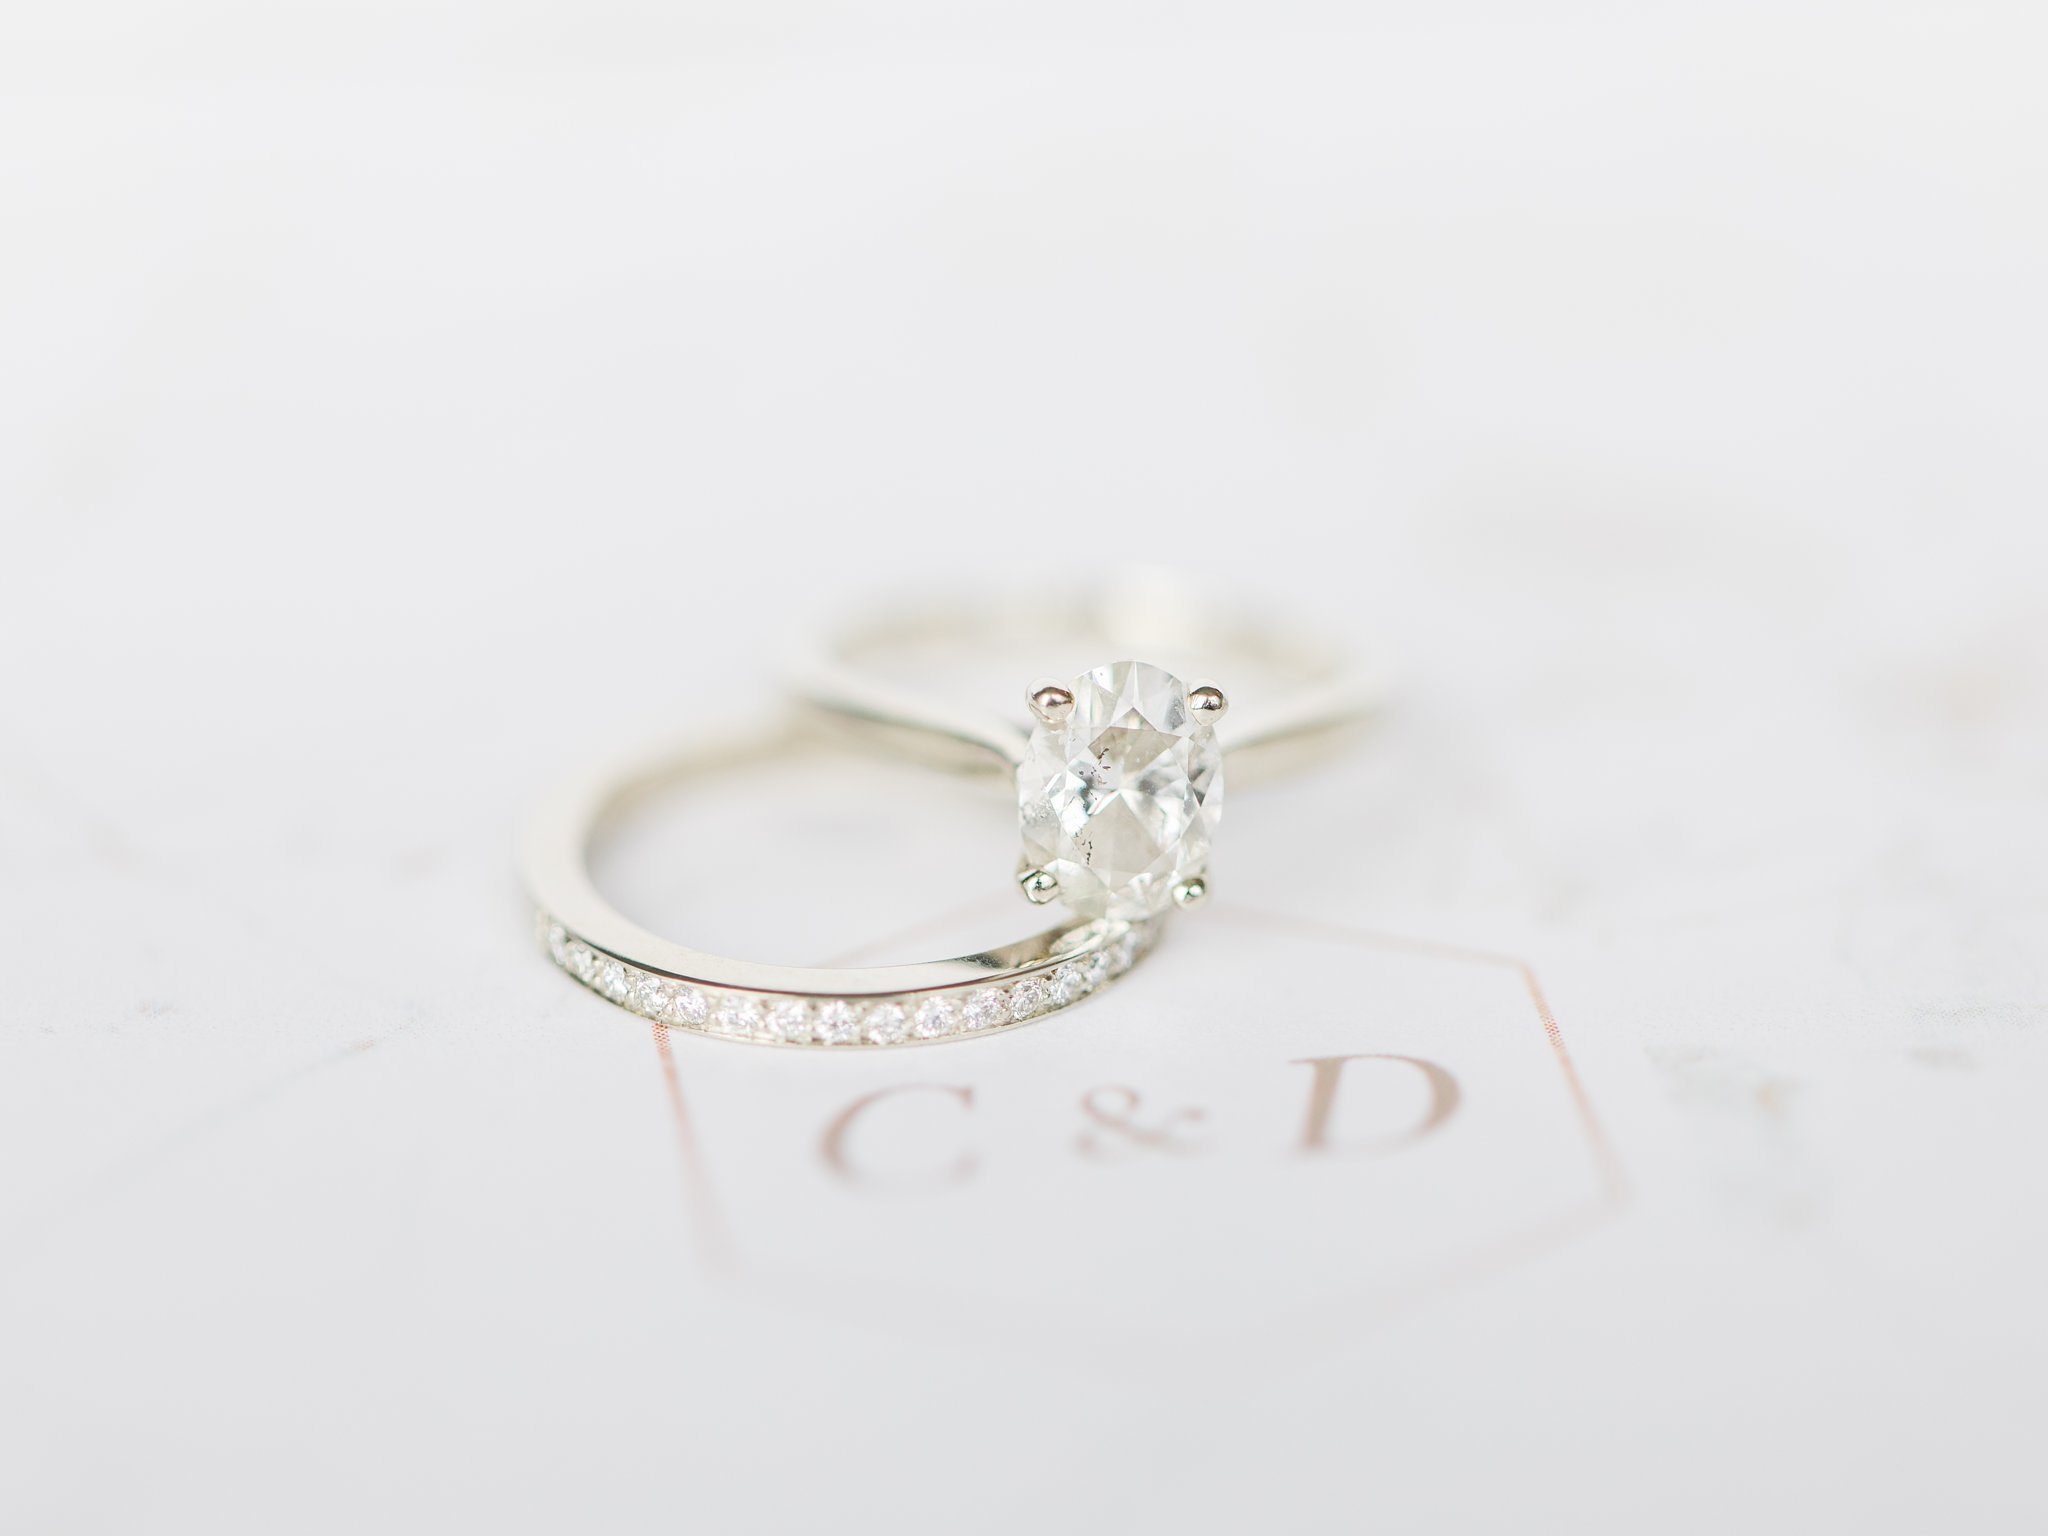 Oval engagement ring with classic wedding band Ottawa restaurant wedding at Sidedoor Restaurant